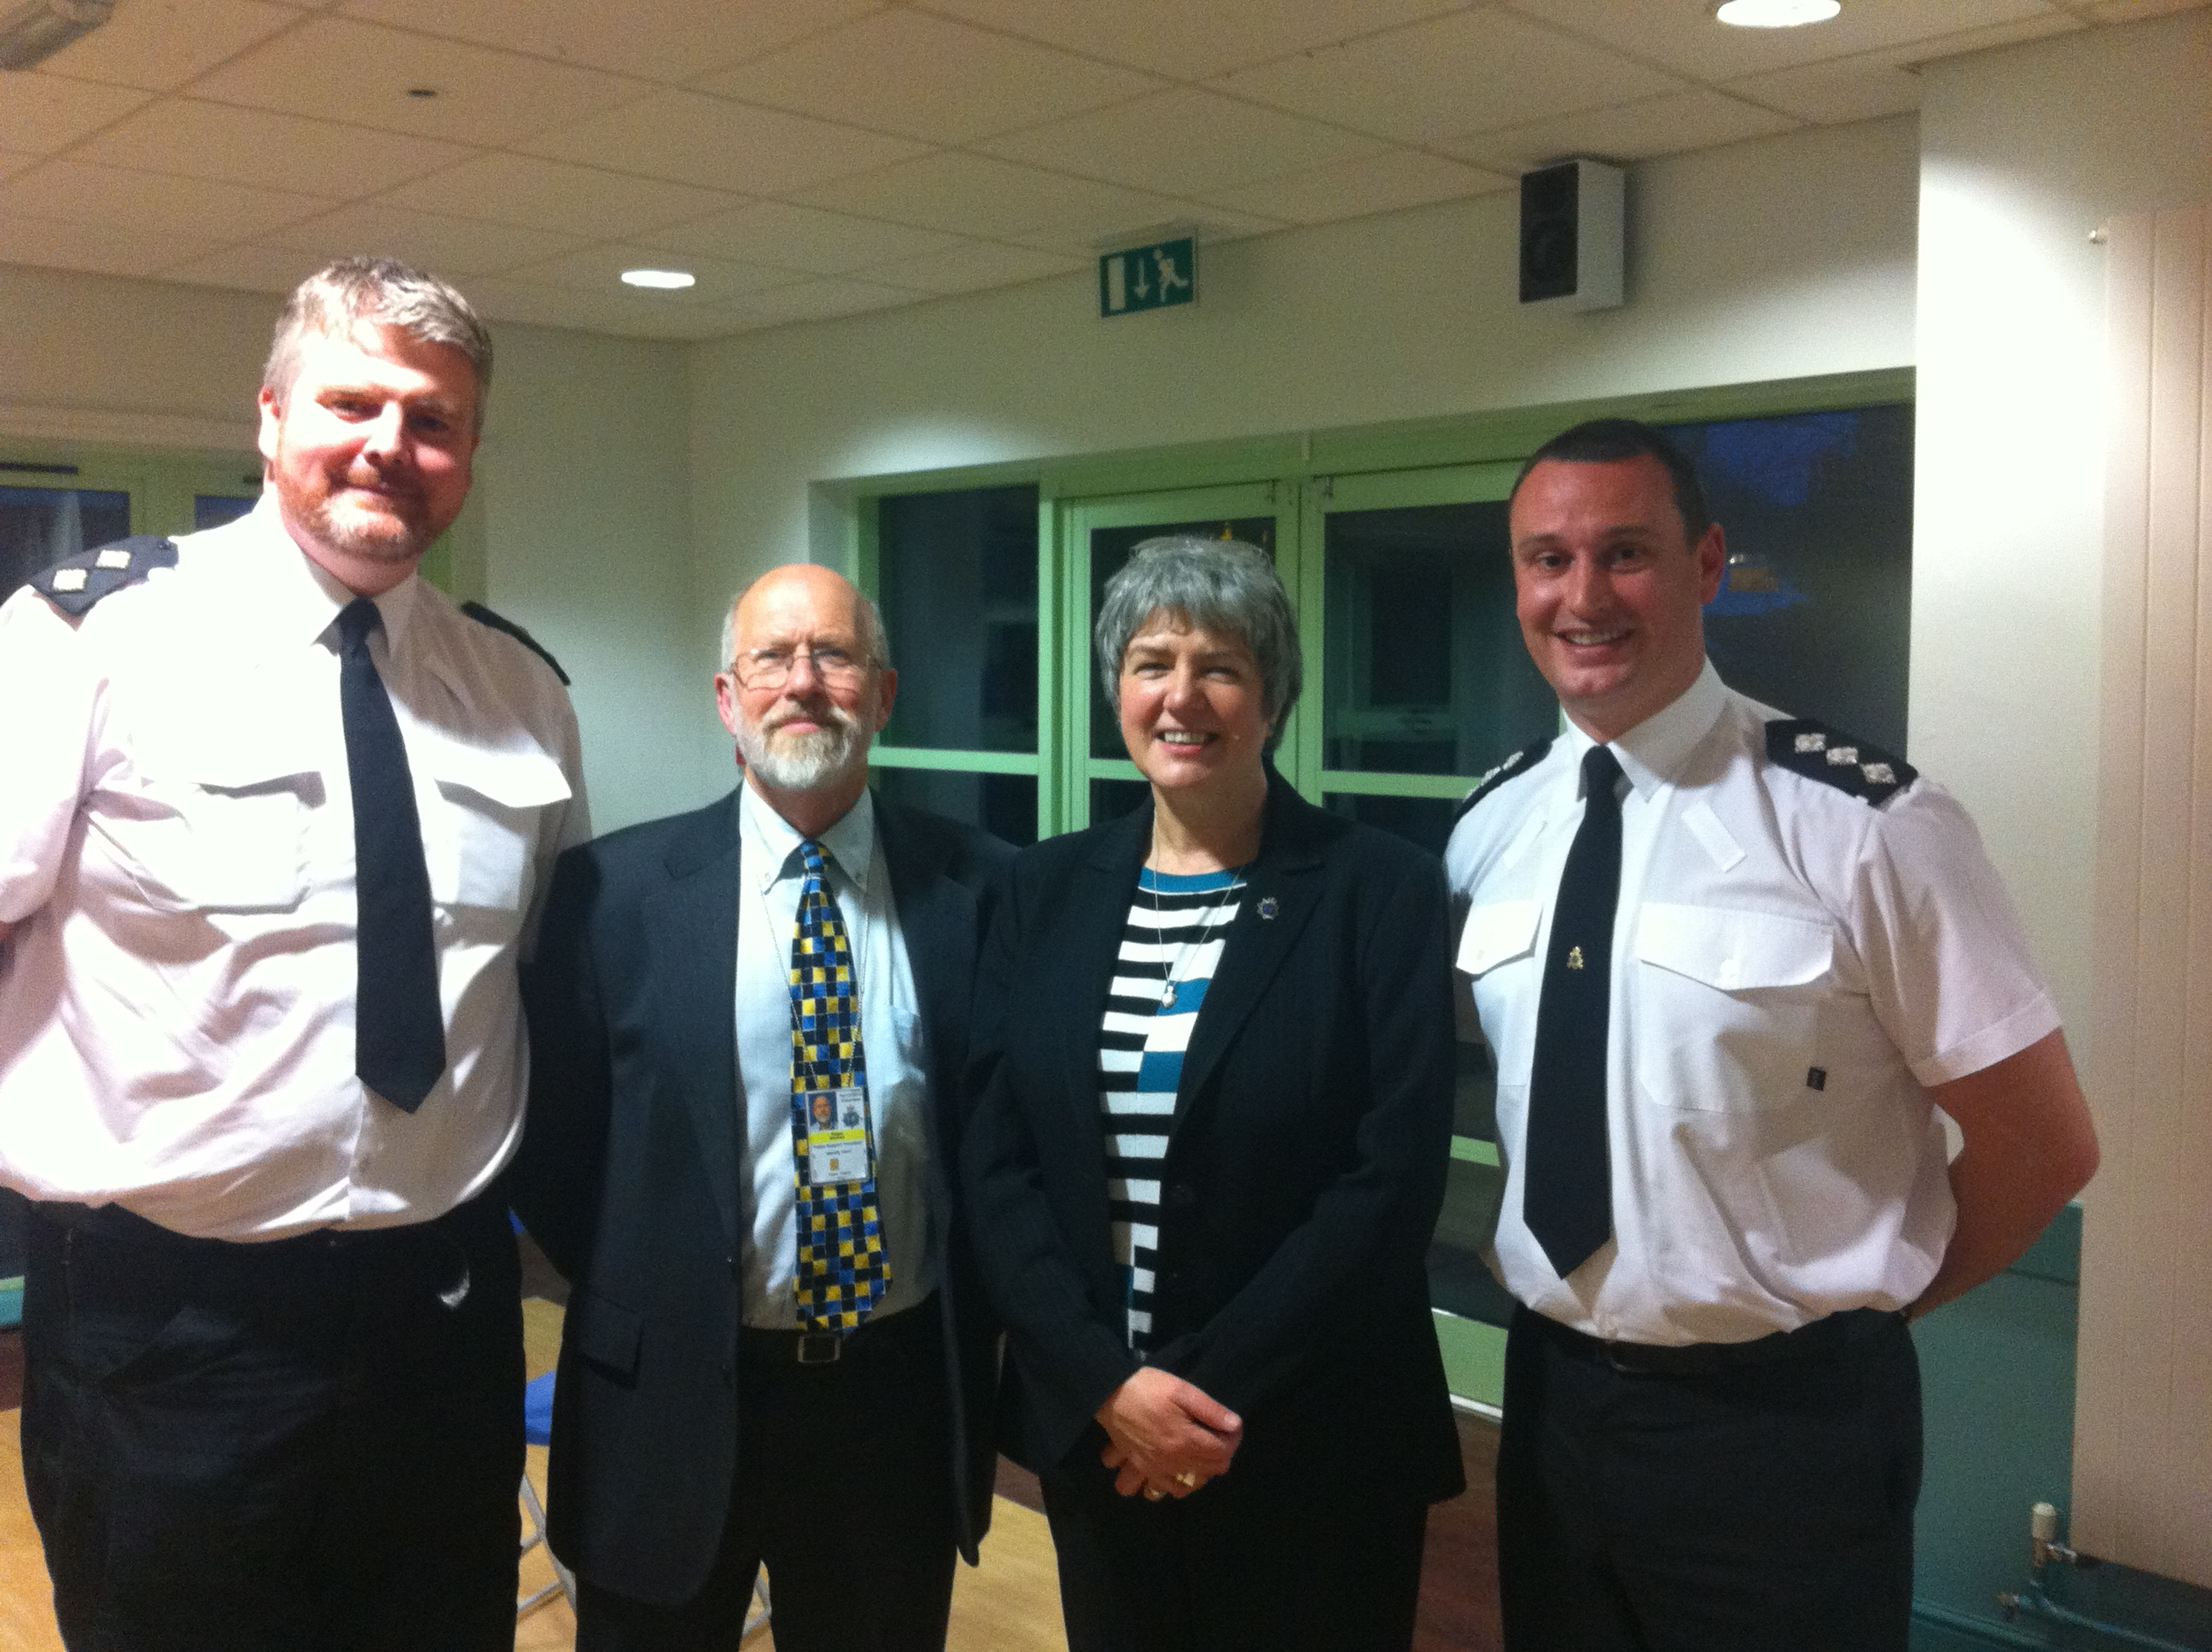 Merseyside Police and Crime Commissioner Jane Kennedy at Freshfield, Formby & Ince Blundell Homewatch Scheme's AGM at Formby High Sixth Form Centre, with Ch Insp Chris Burnham, Insp Nigel Stewart and chairman Roger Sloman.